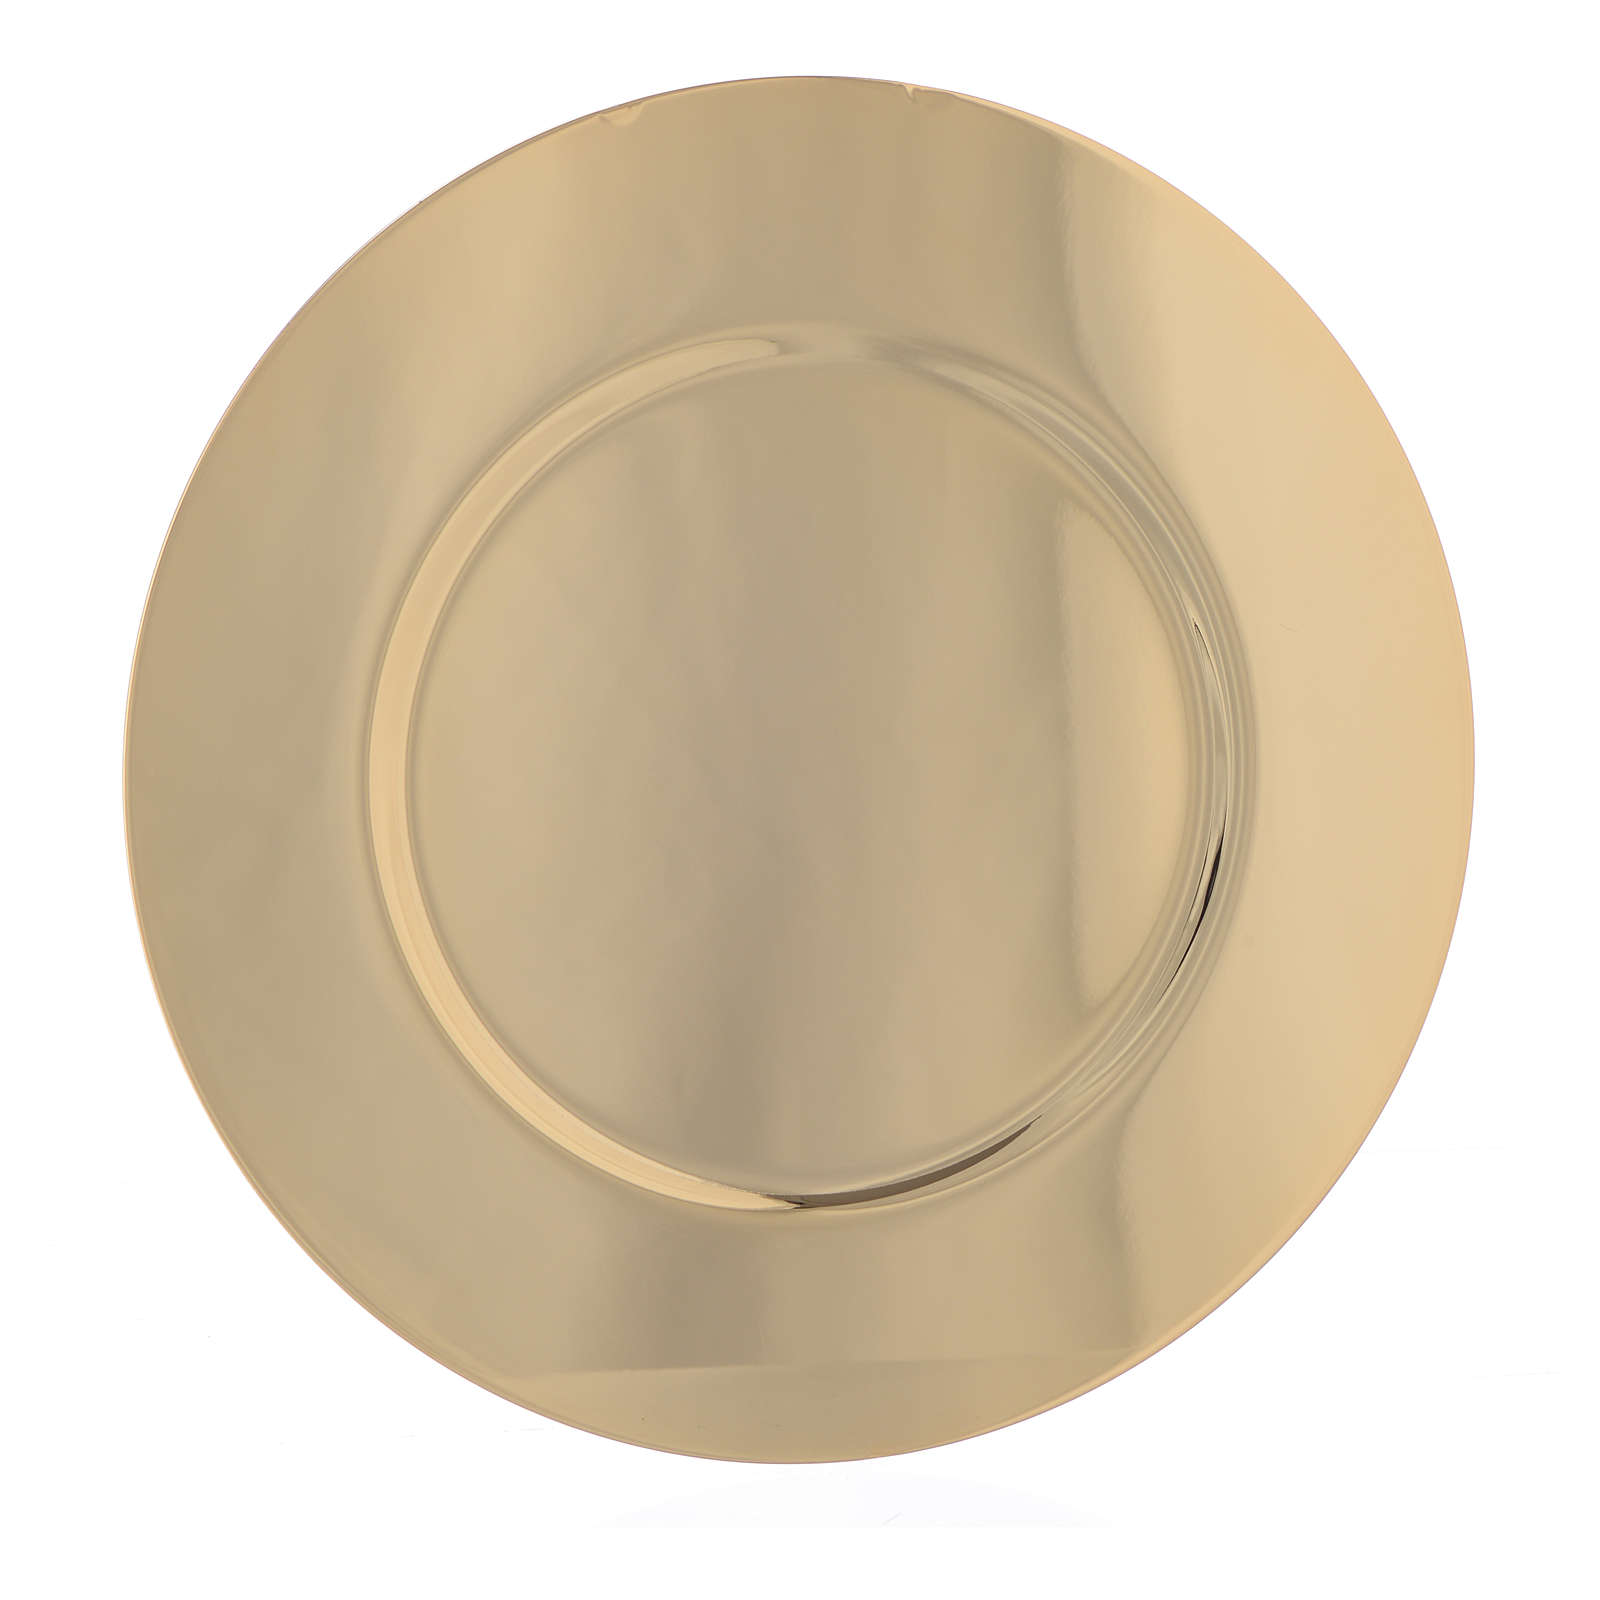 Paten in gold-plated shaped brass, 15,5cm 4